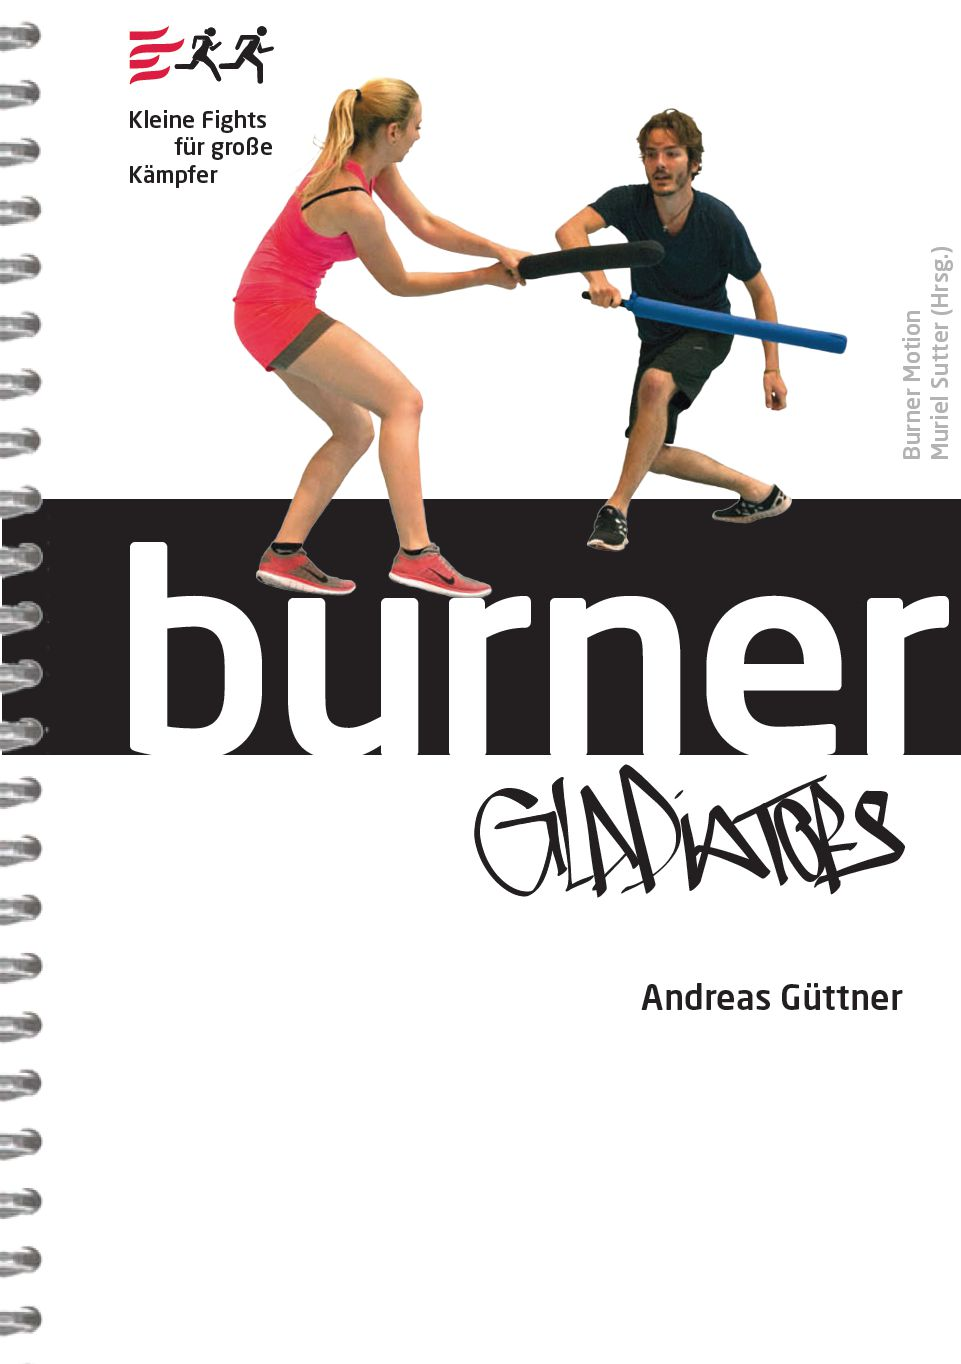 Burner Gladiators